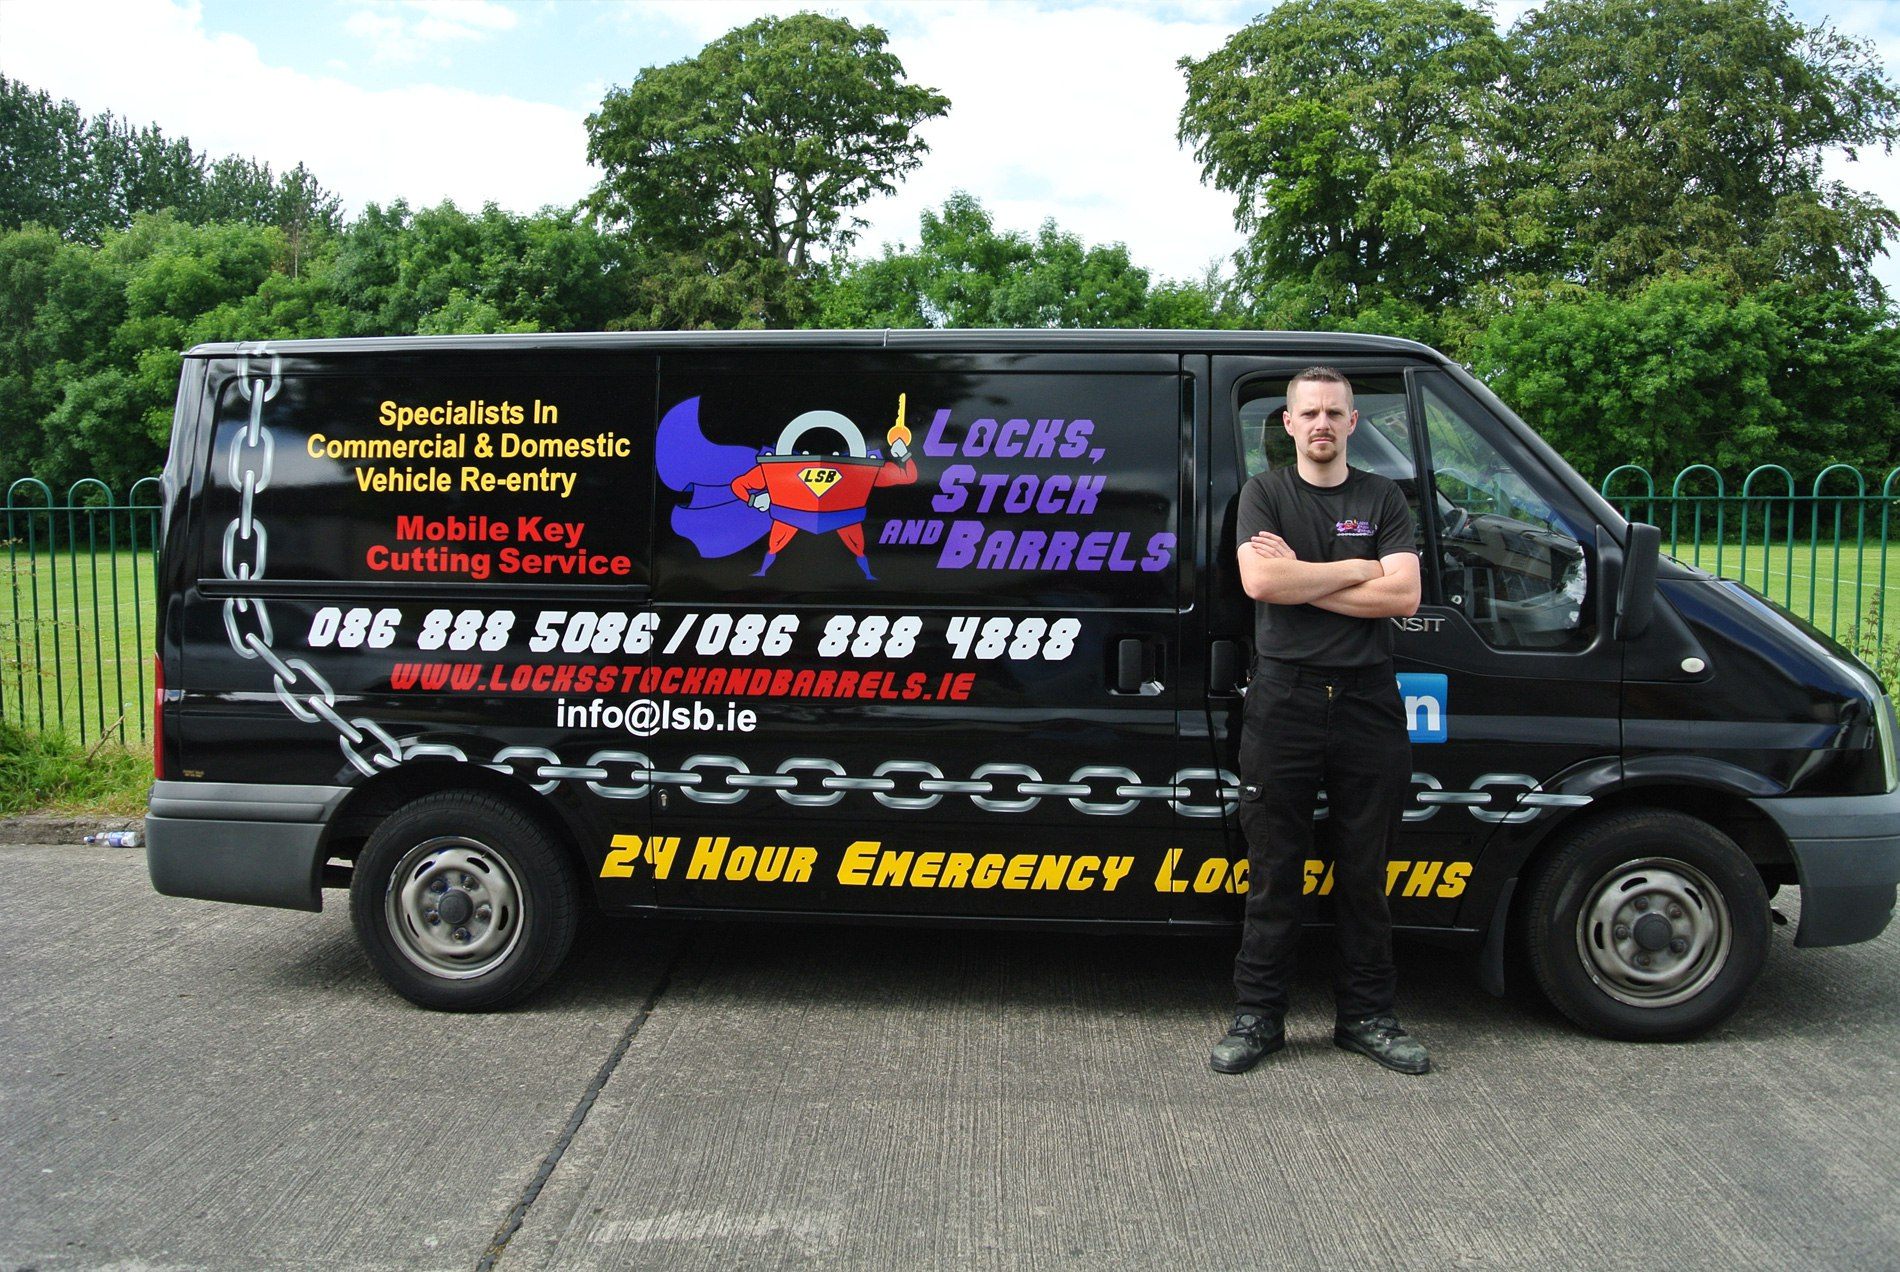 locksmith-dublin-with-van